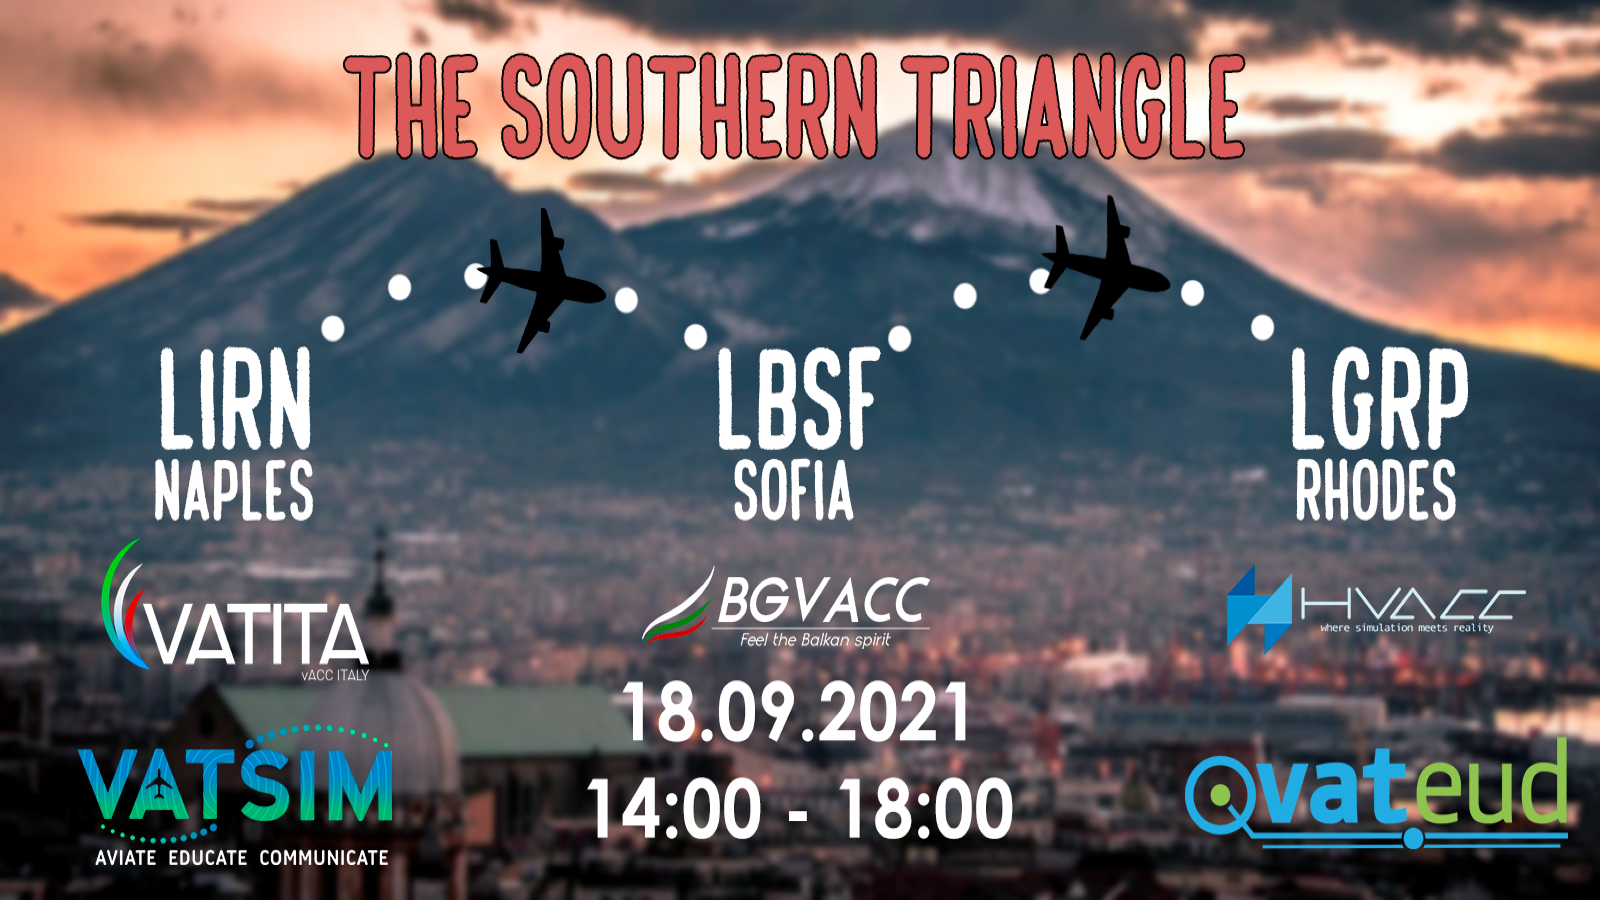 The Southern Triangle   Saturday 18 September   17:00 - 21:00 Local